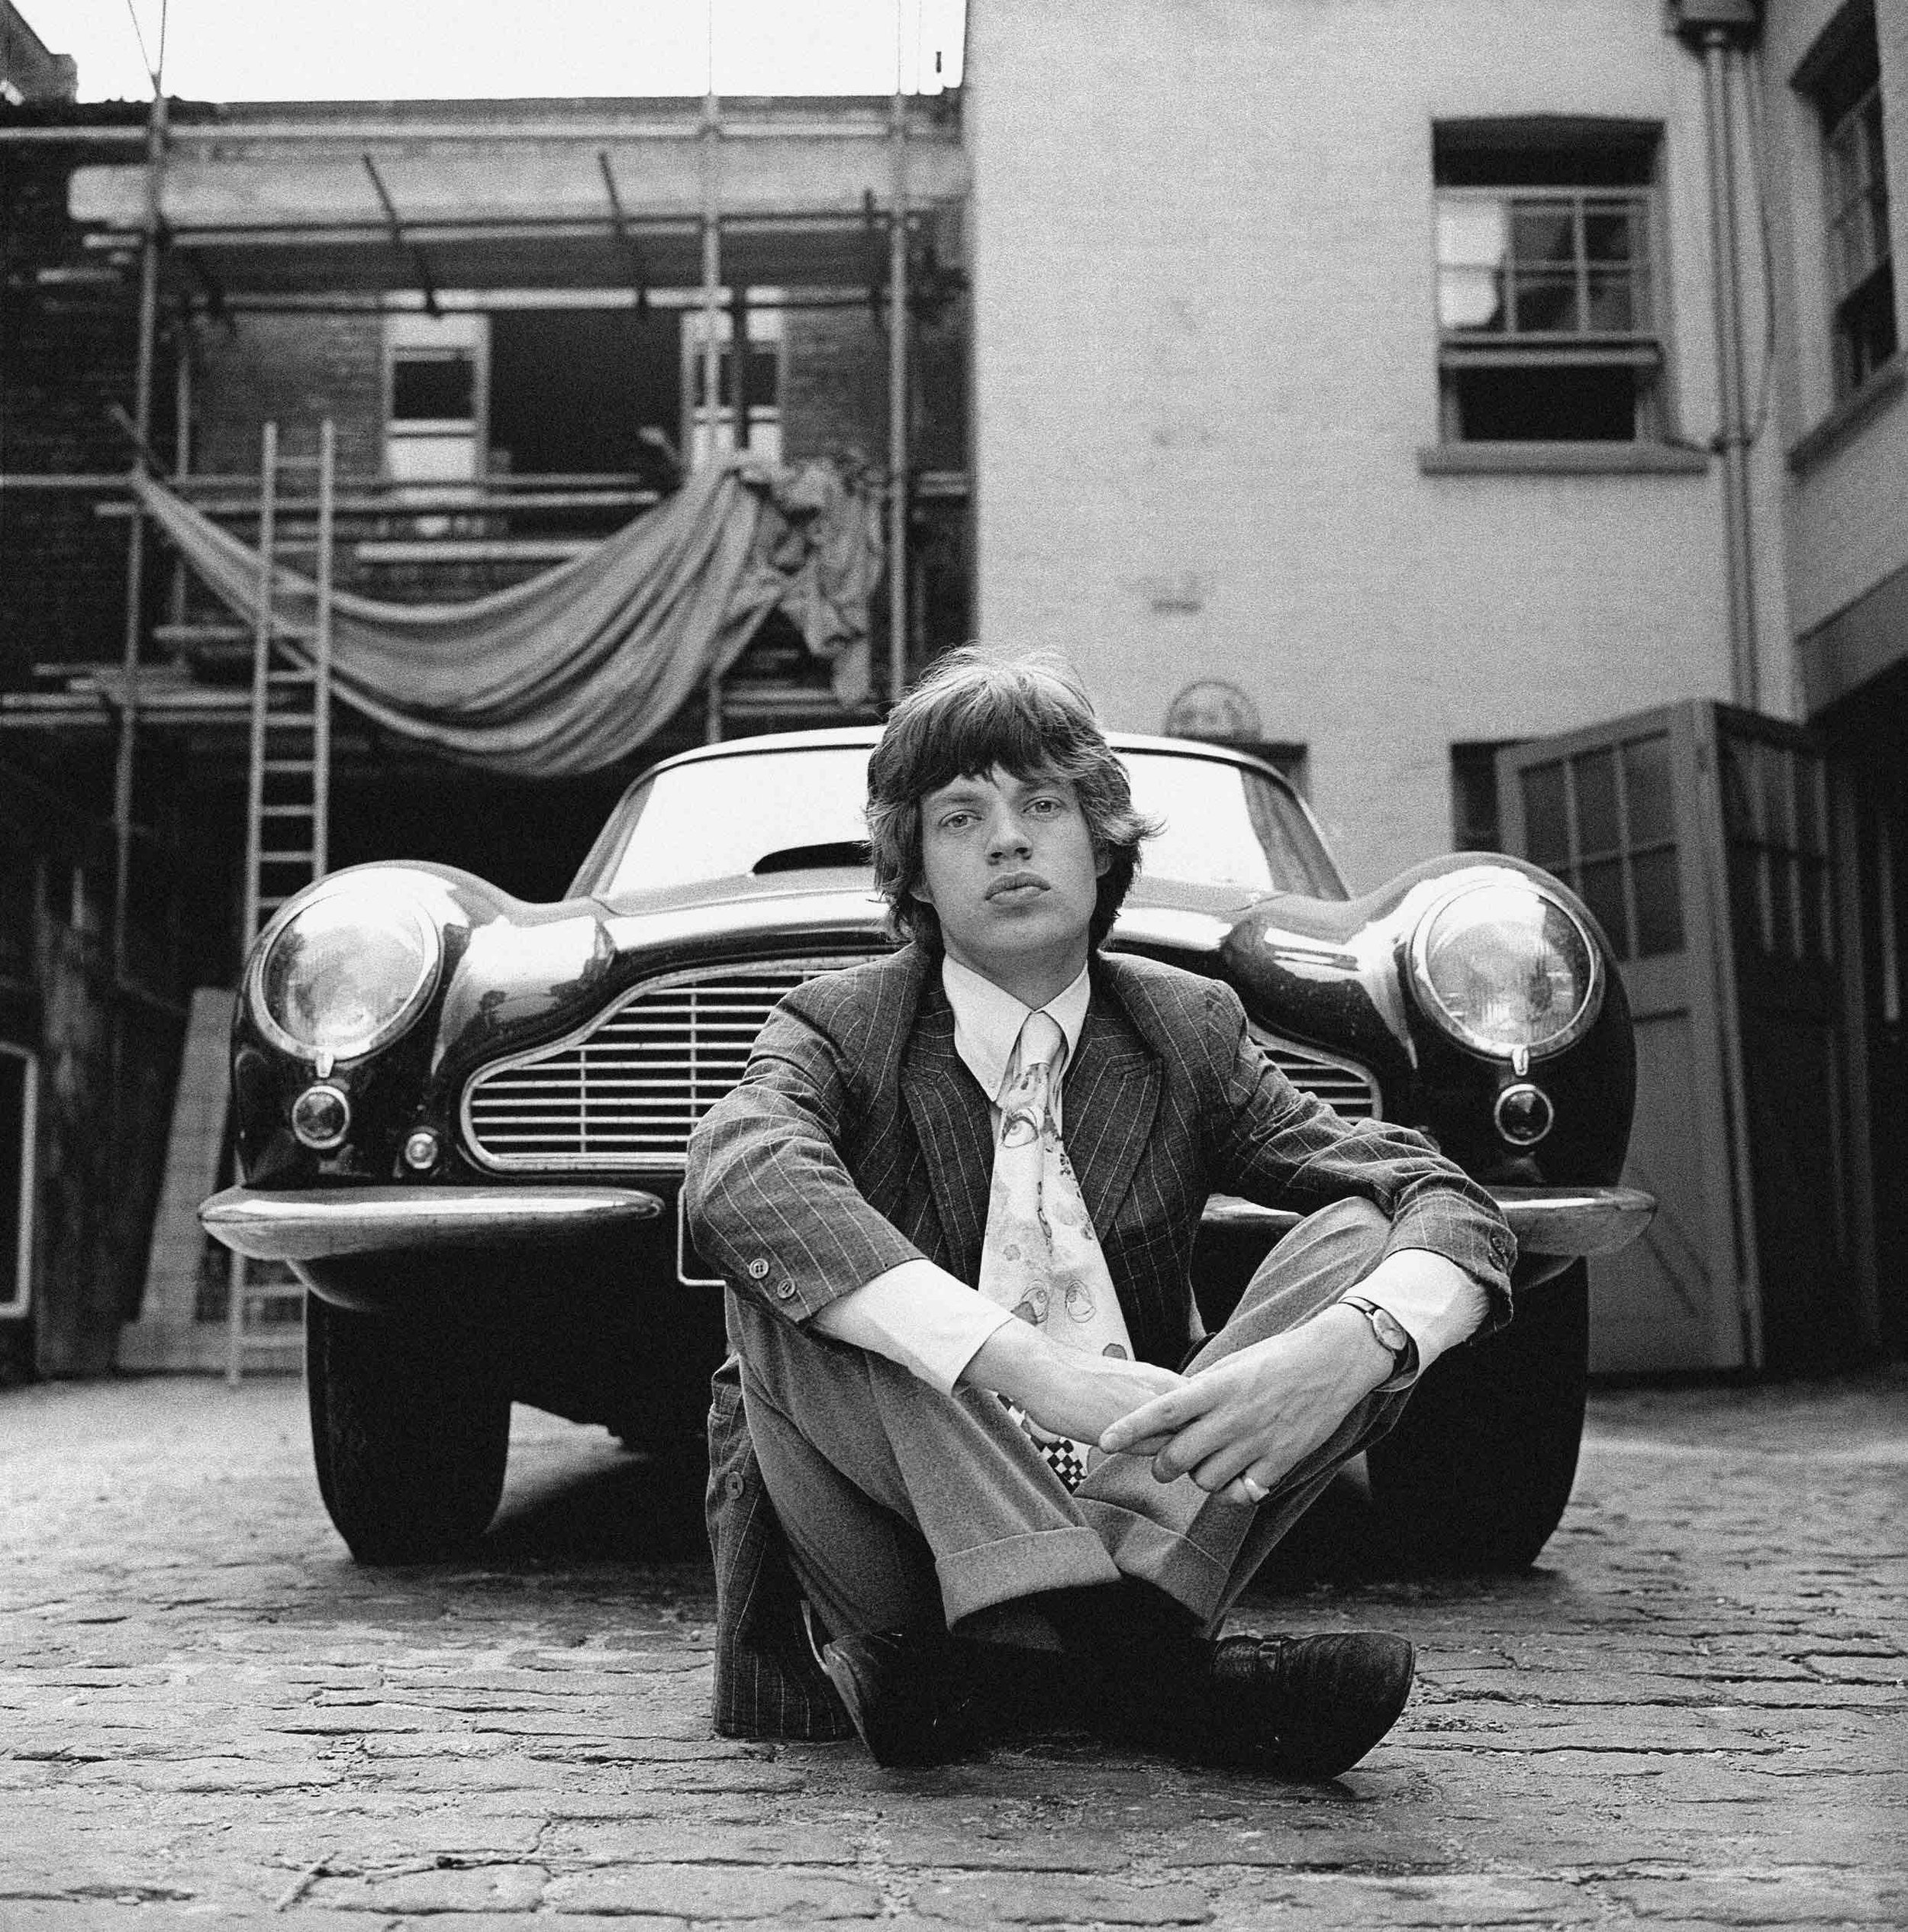 Mick & Aston, Central London, 1966